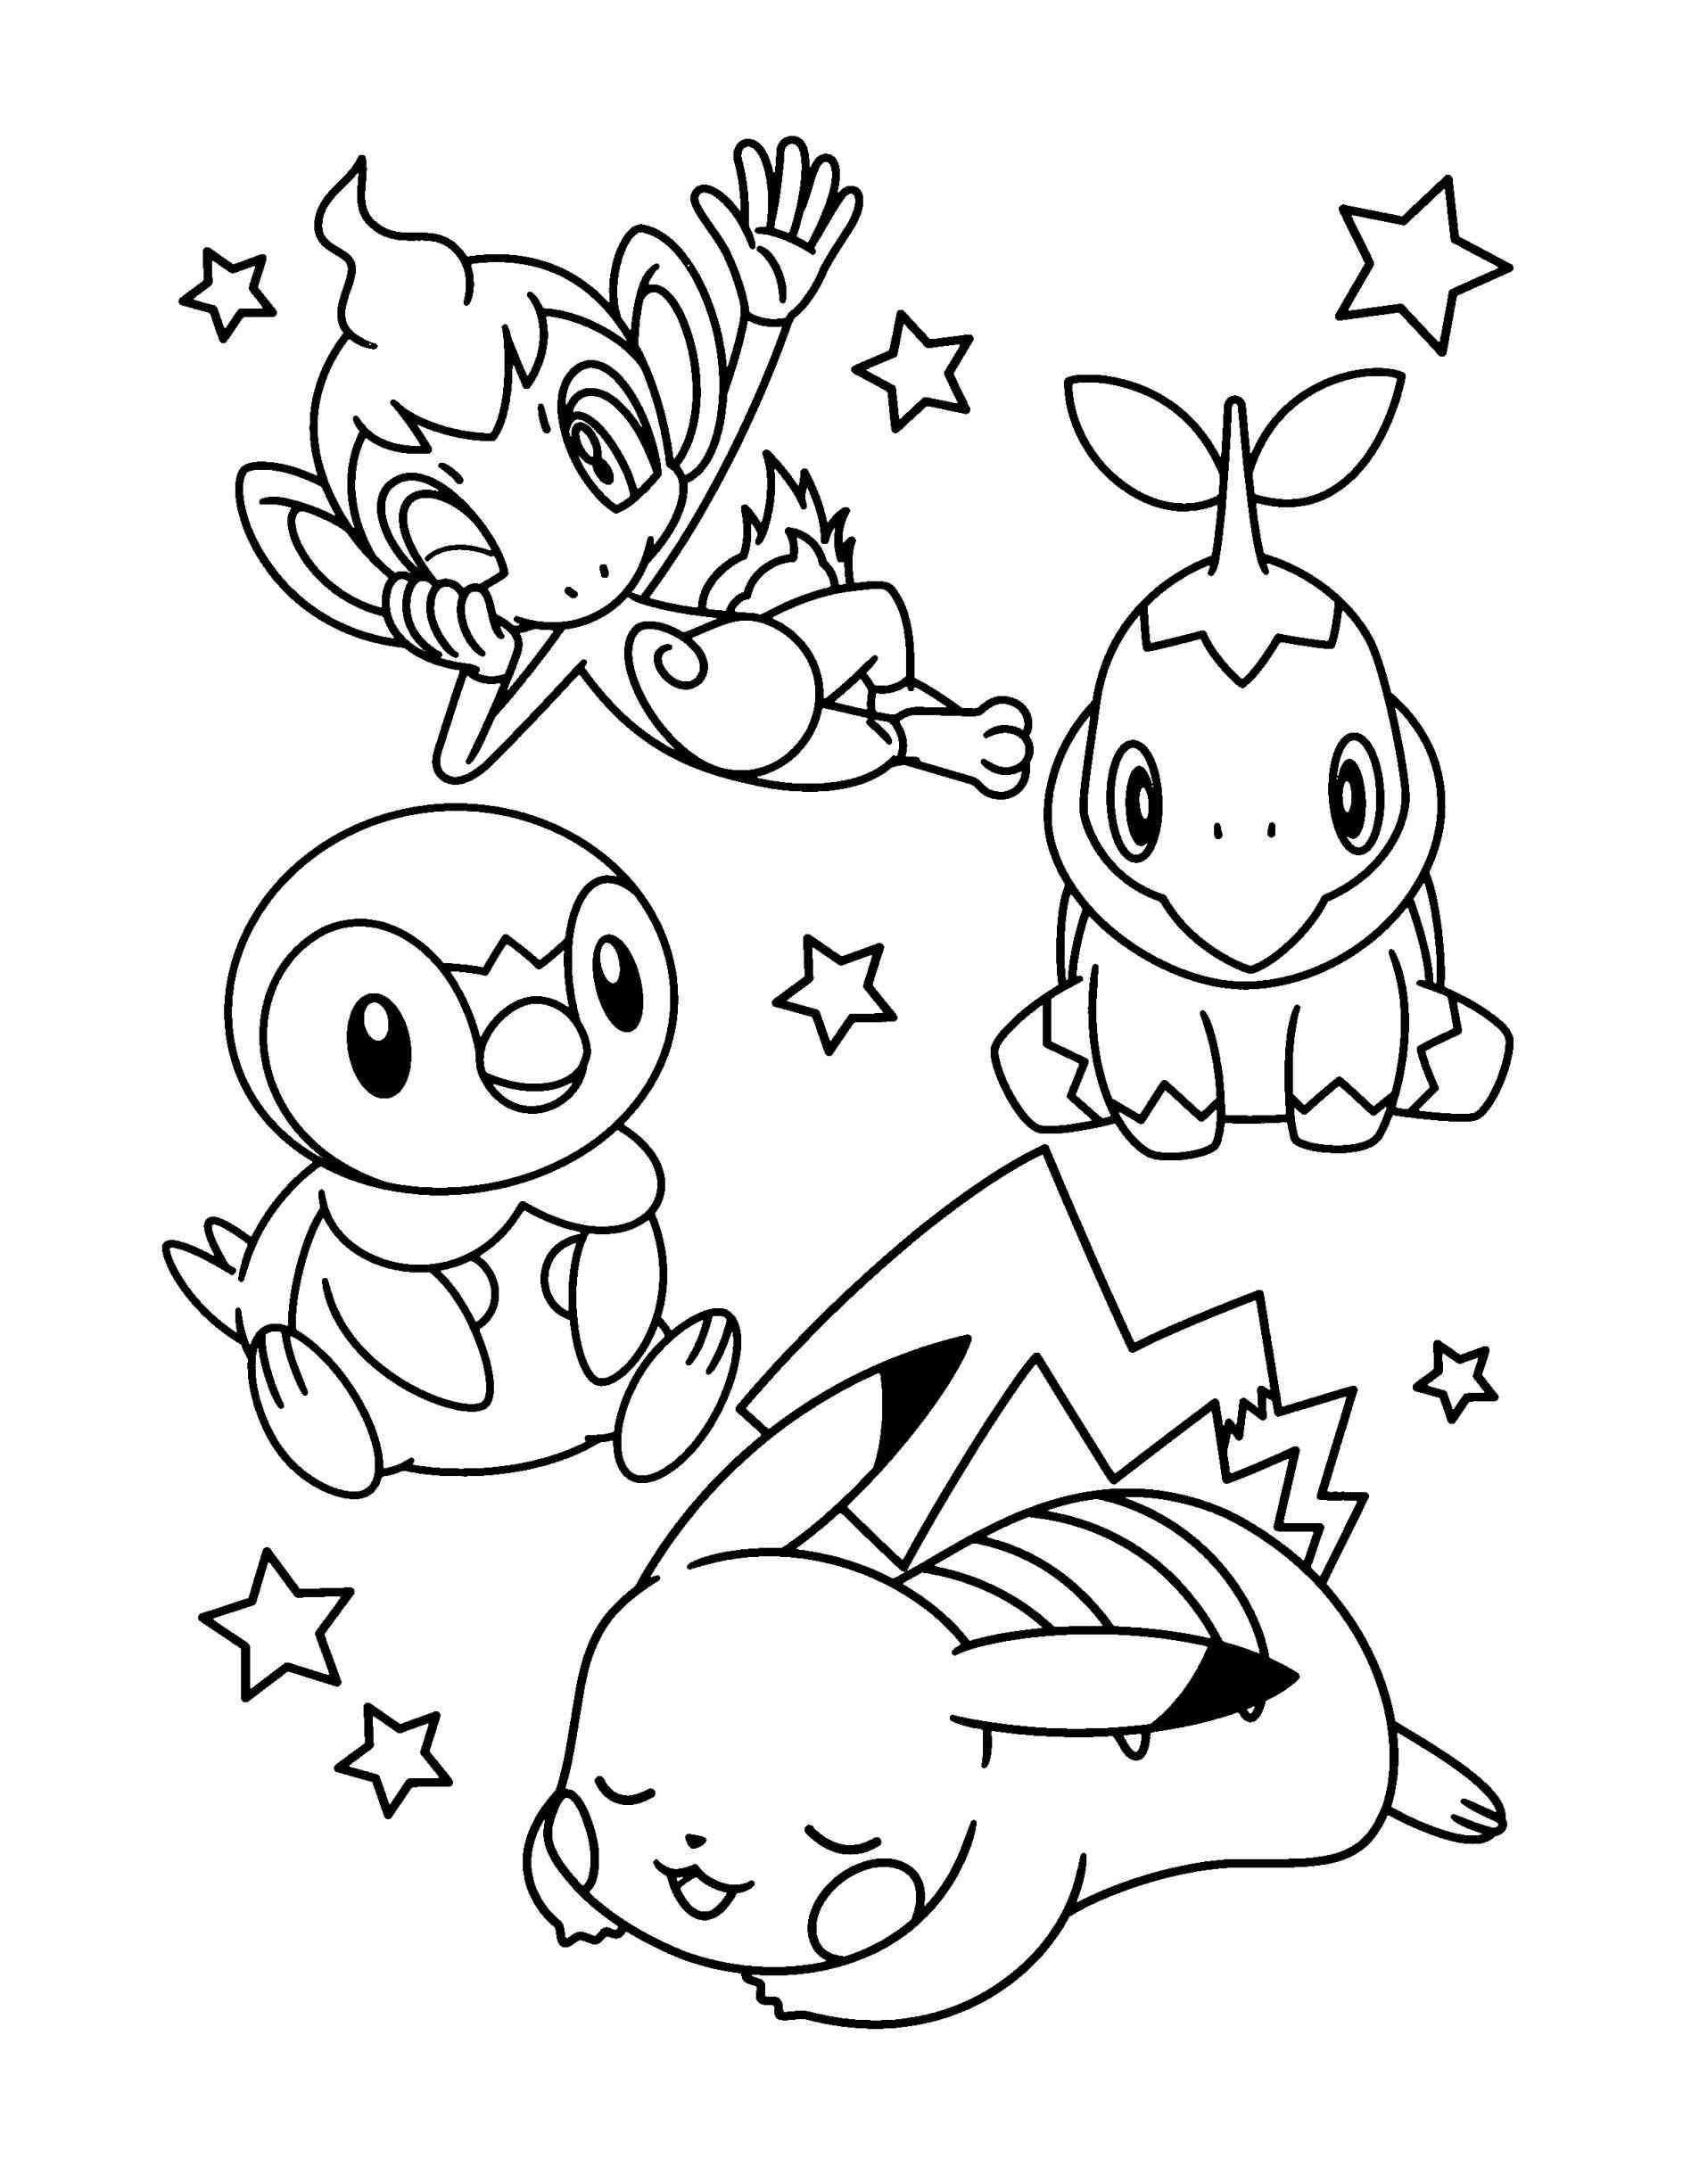 Pokemon Coloring Page Pikachu Youngandtae Com In 2020 Pokemon Coloring Pages Cartoon Coloring Pages Cute Coloring Pages